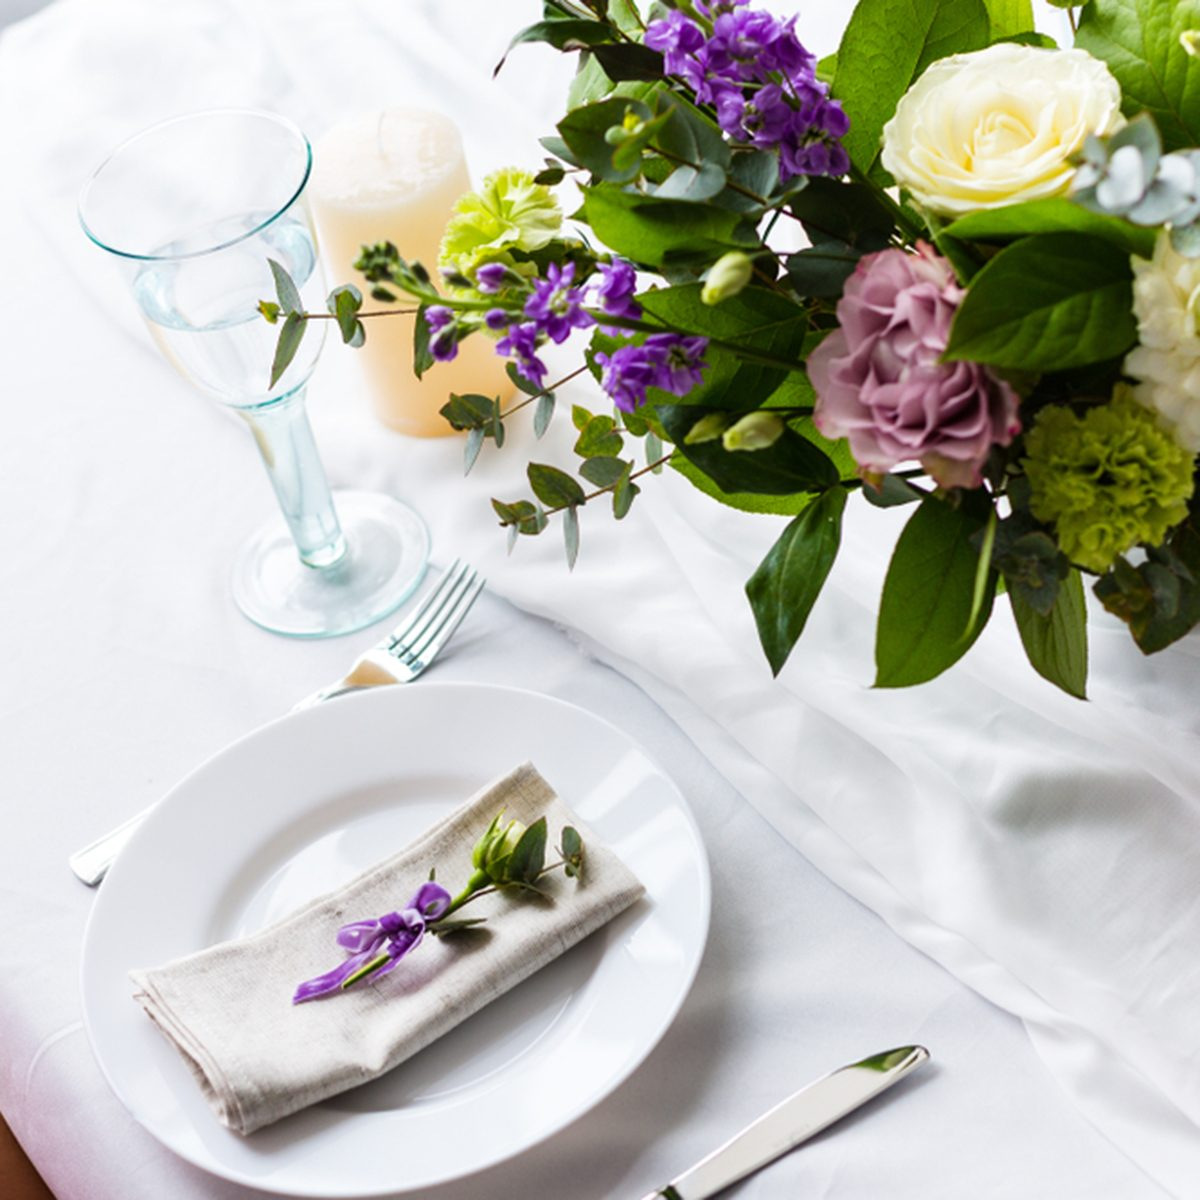 Romantic dinner setup with fresh flowers in a restaurant